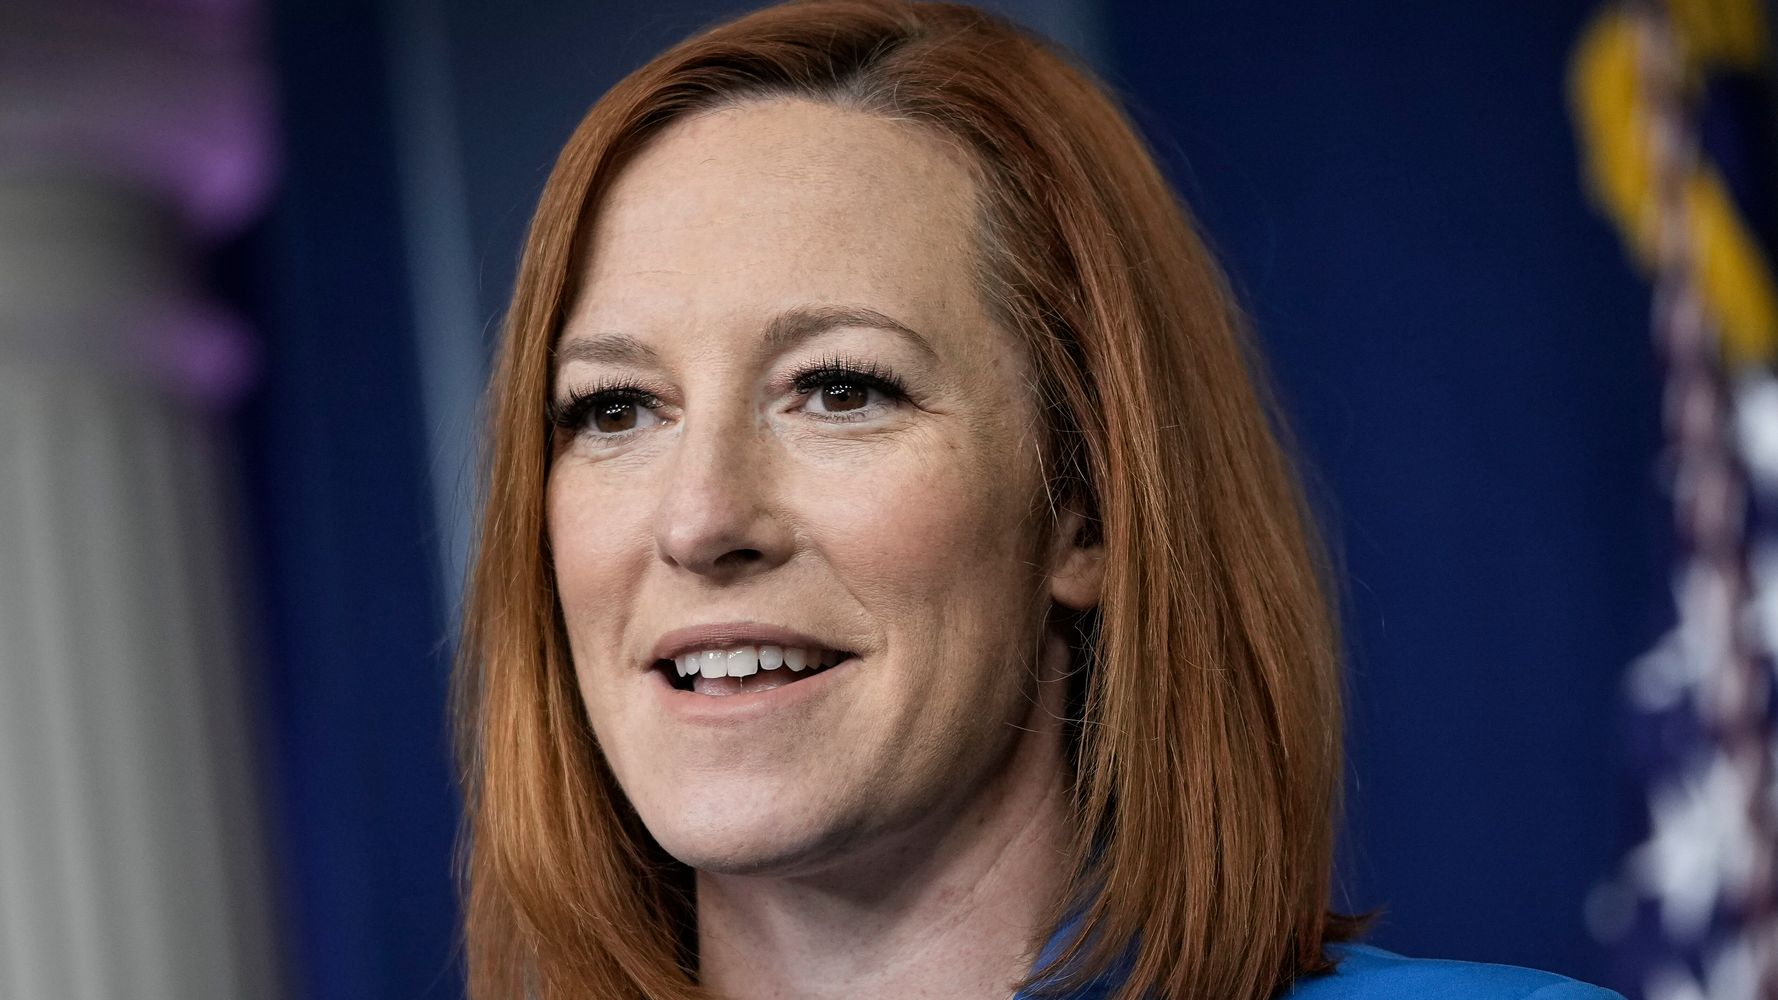 Newsmax Reporter Tries Trump's 'People Are Saying' Line. Jen Psaki Isn't Having It.